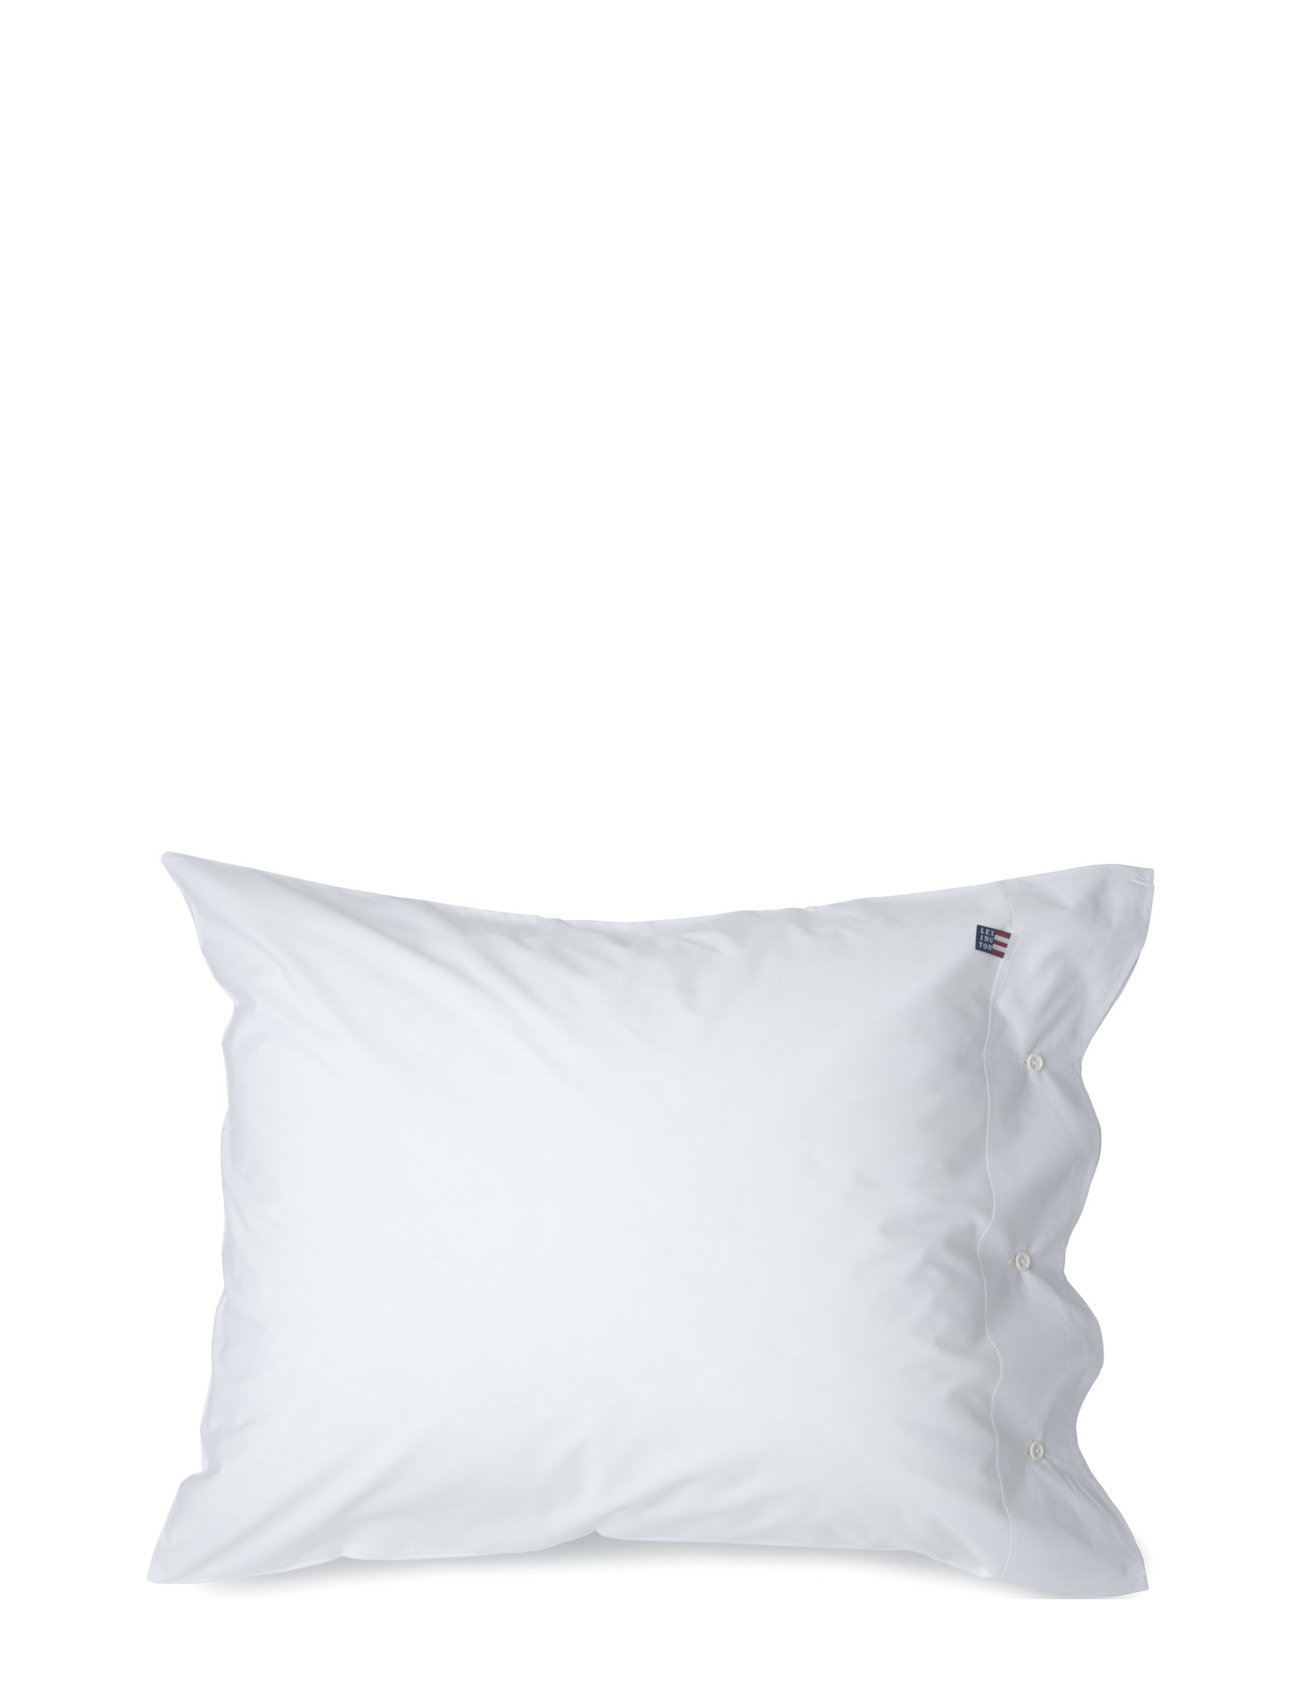 Lexington Home Pin Point White Pillowcase - WHITE